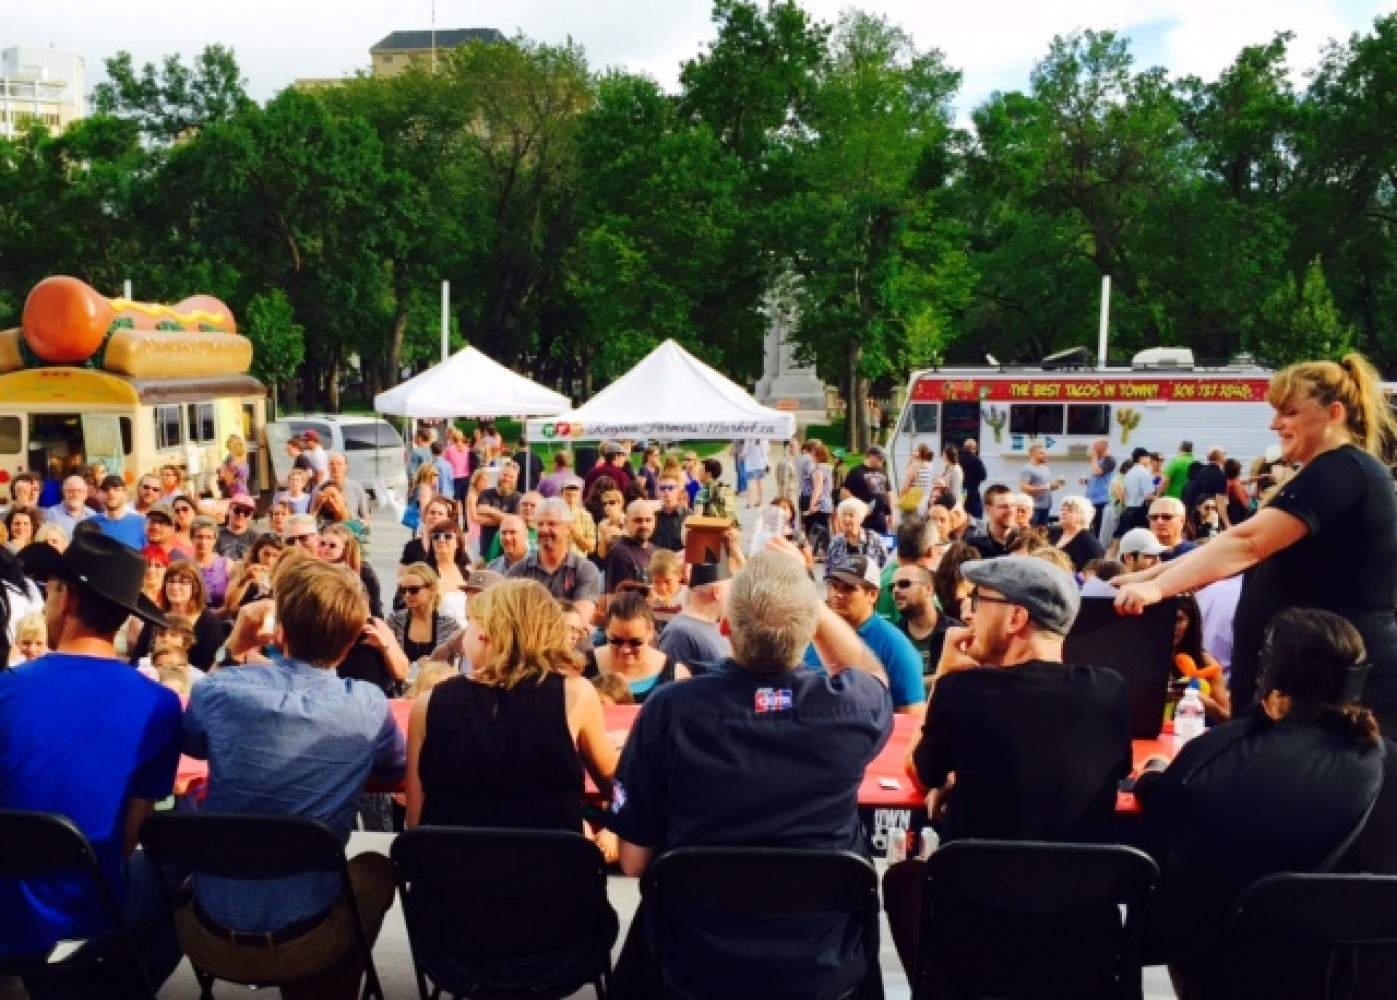 Street Beets July 17th, 2015: I Love Regina Day, Salayview Eggs, and Map!